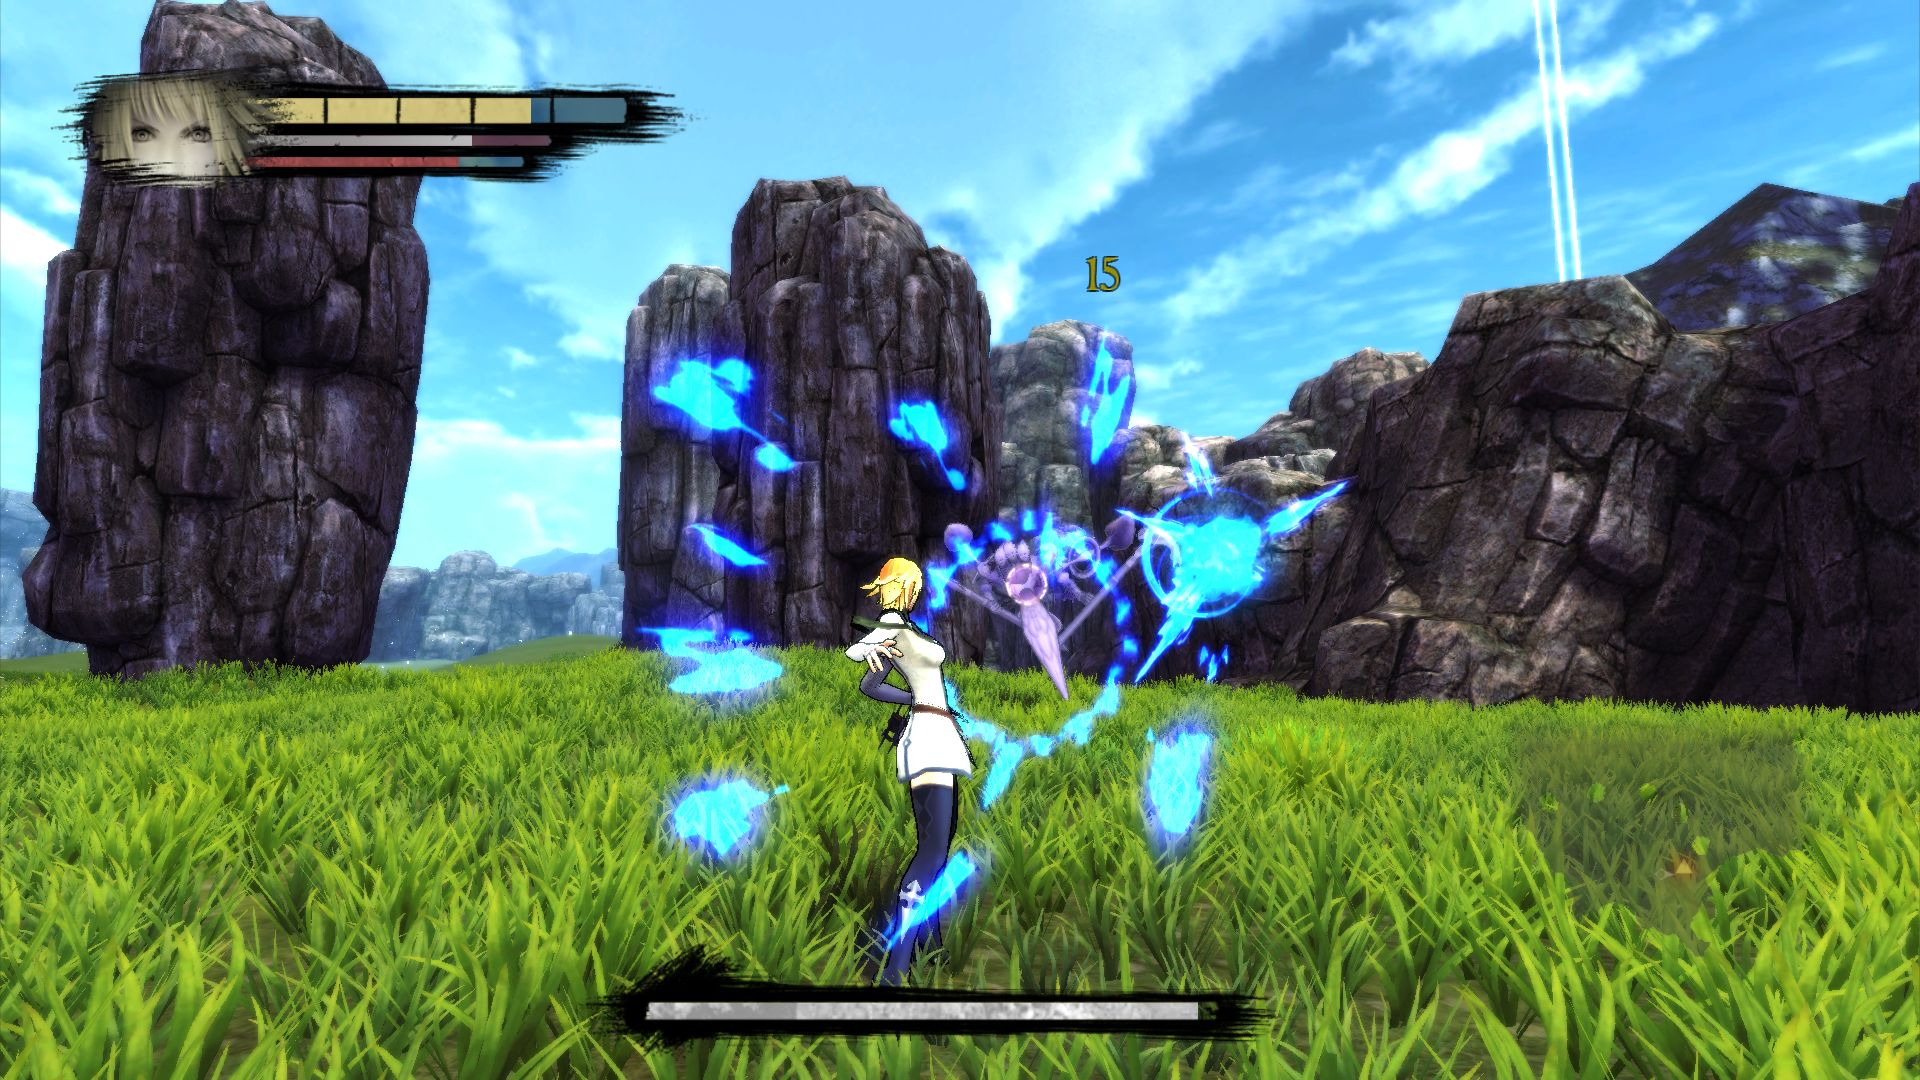 Action RPG, Books, Fantasy Books, Book, Author, Indie, Indie Game, Game, Release Date, Game News, News, Book News, Announcement, Trailer, Game Trailer, Videogame Trailer, Action-RPG, RPG, Action RPG, Action, Action Adventure, Adventure, Fantasy, Fantasy Book, Fantasy Books, Novel, Novels, Anima, Anima Gate of Memories, Gate of Memories, PC, PS4, Xbox, Xbone, Steam, Xbox One, RPG, Roleplaying Game, Multiple Endings, Decisions Matter, Player Decisions Matter, Choice and Consequence, High Replay Value, Story-Rich, Story Rich, PR